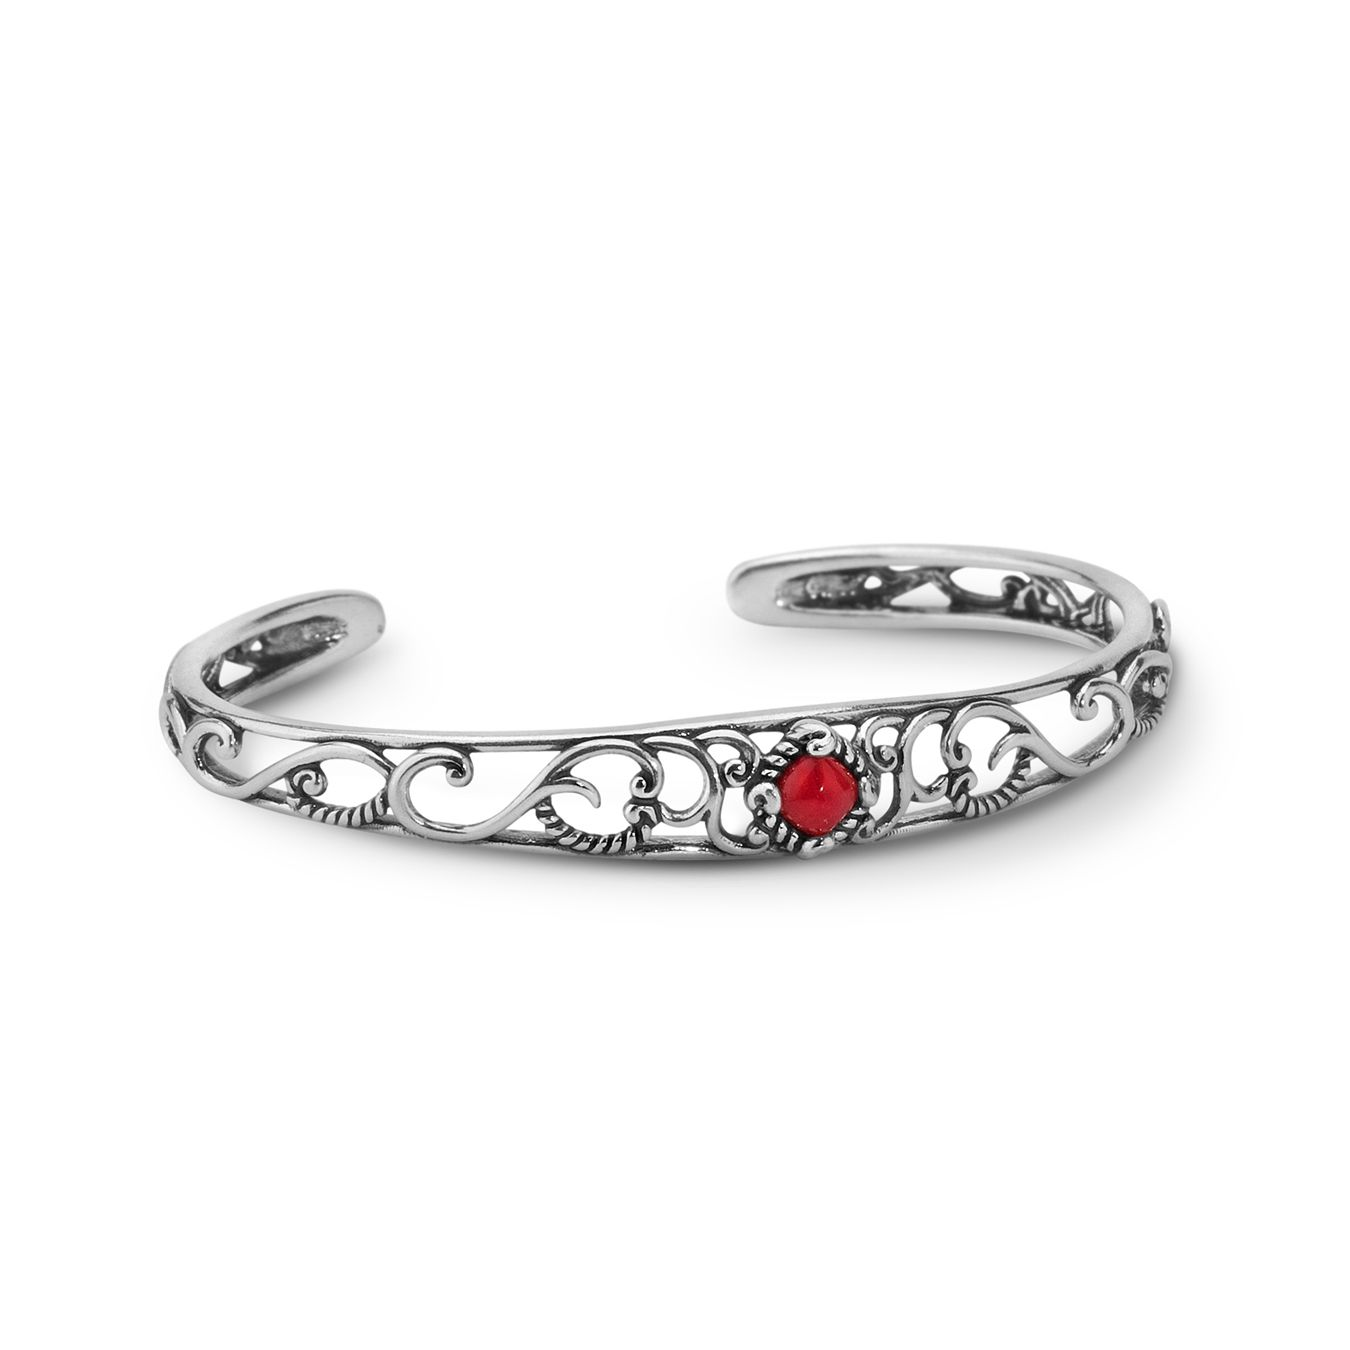 Scrolling silver and rope design make this bracelet a true beauty